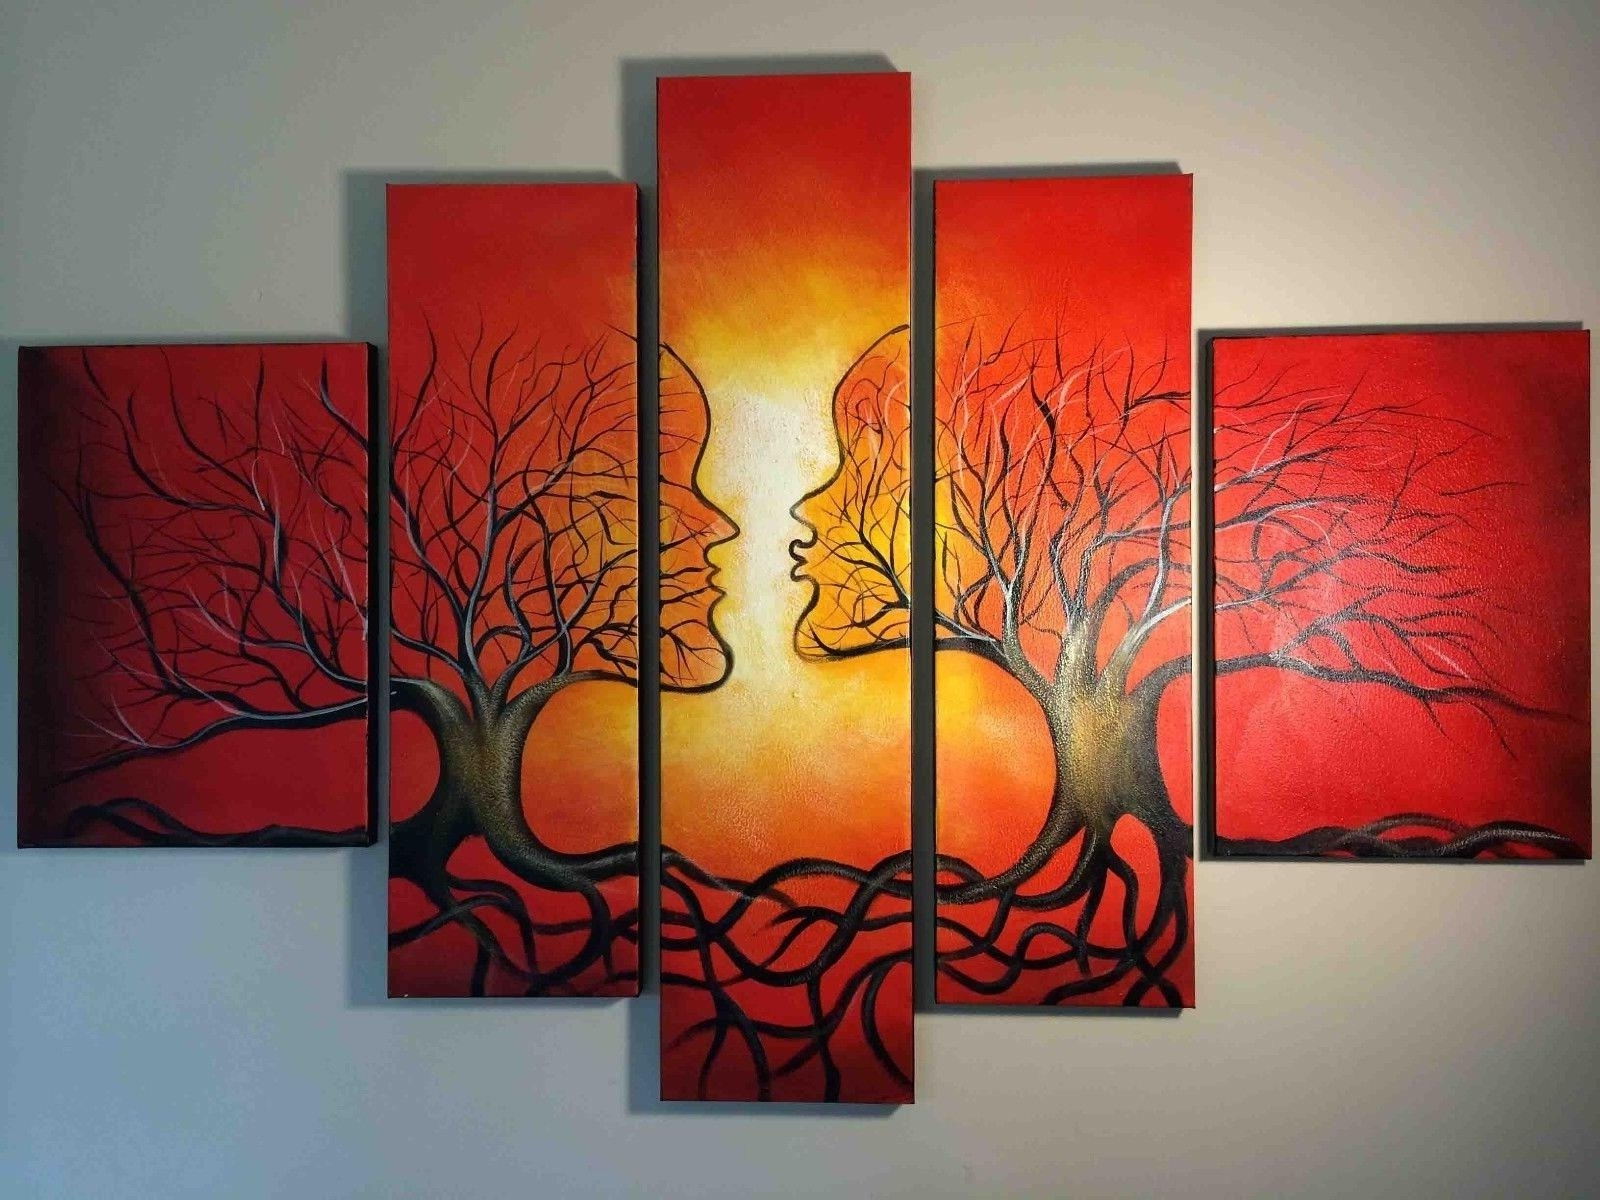 Wall Art Designs: Abstract Wall Art Red Abstract Oil Painting With Regard To Popular Large Framed Abstract Wall Art (View 10 of 15)